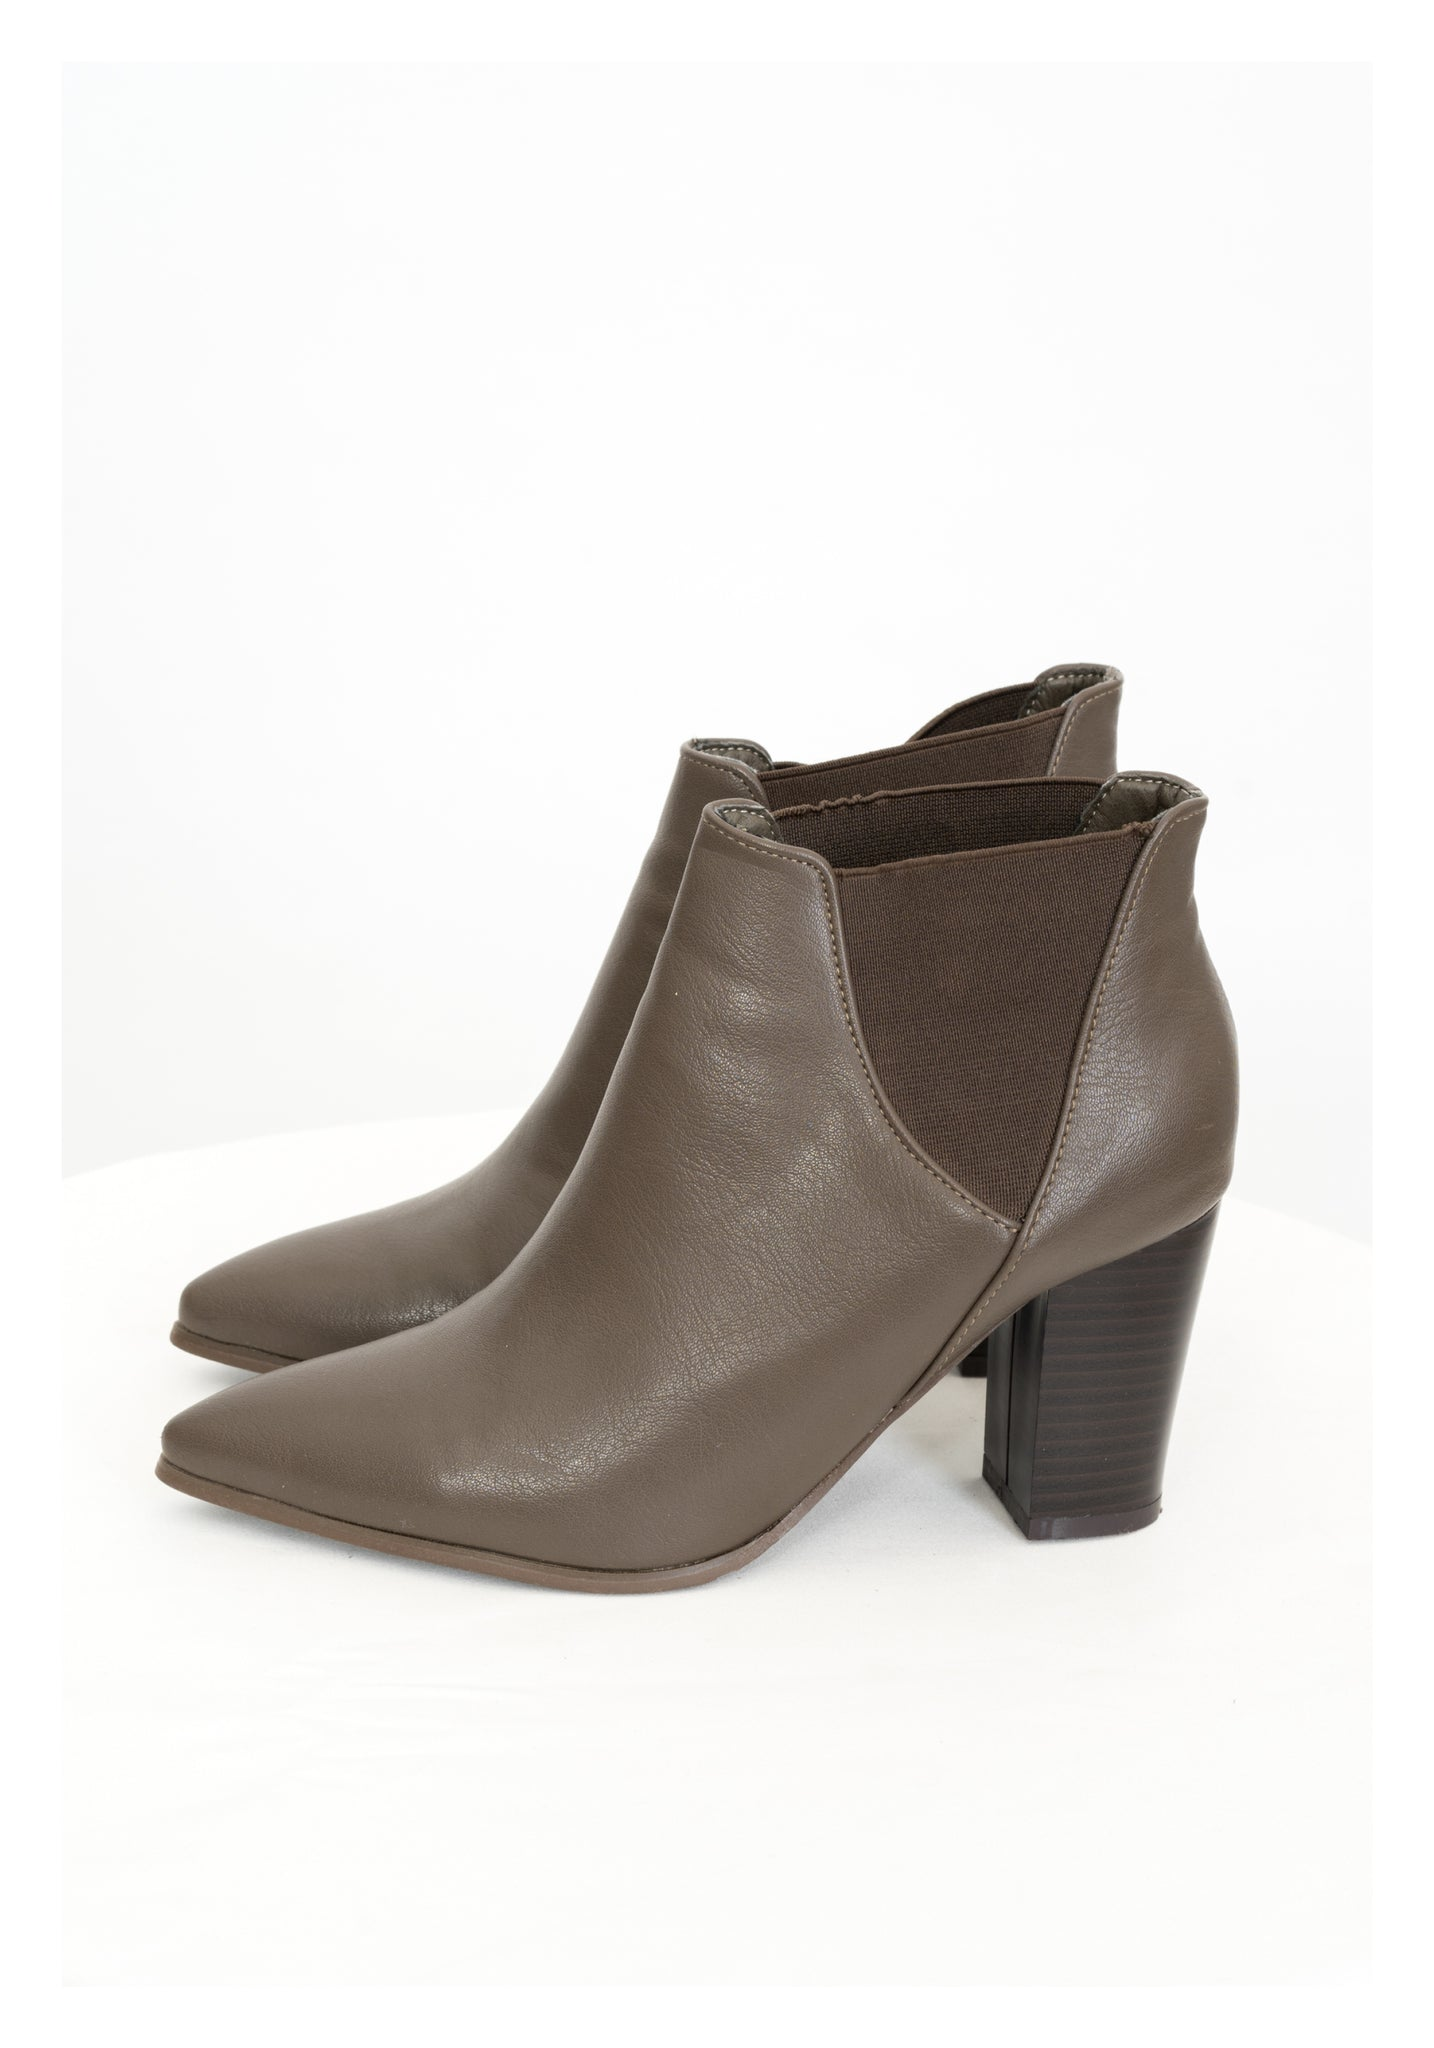 Sample Kara Ankle Boots - whoami